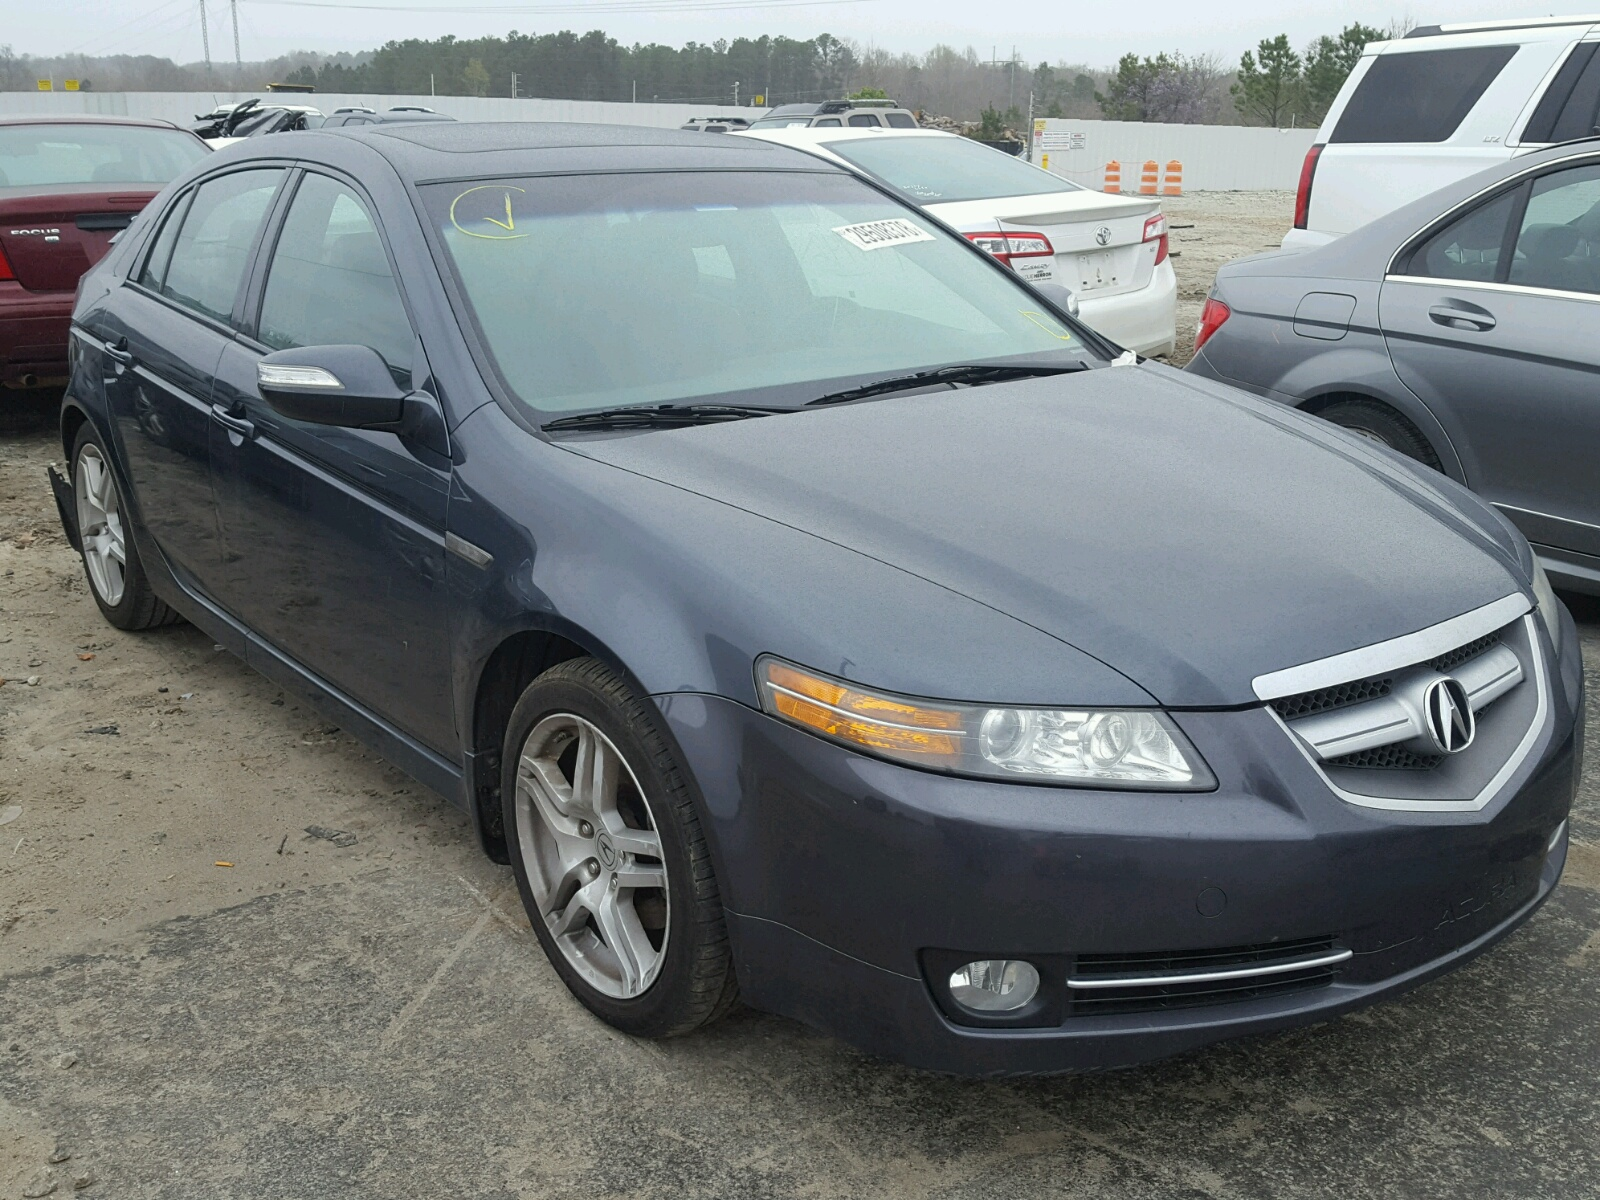 UUAA BLUE ACURA TL On Sale In GA ATLANTA EAST - 2007 acura tl for sale